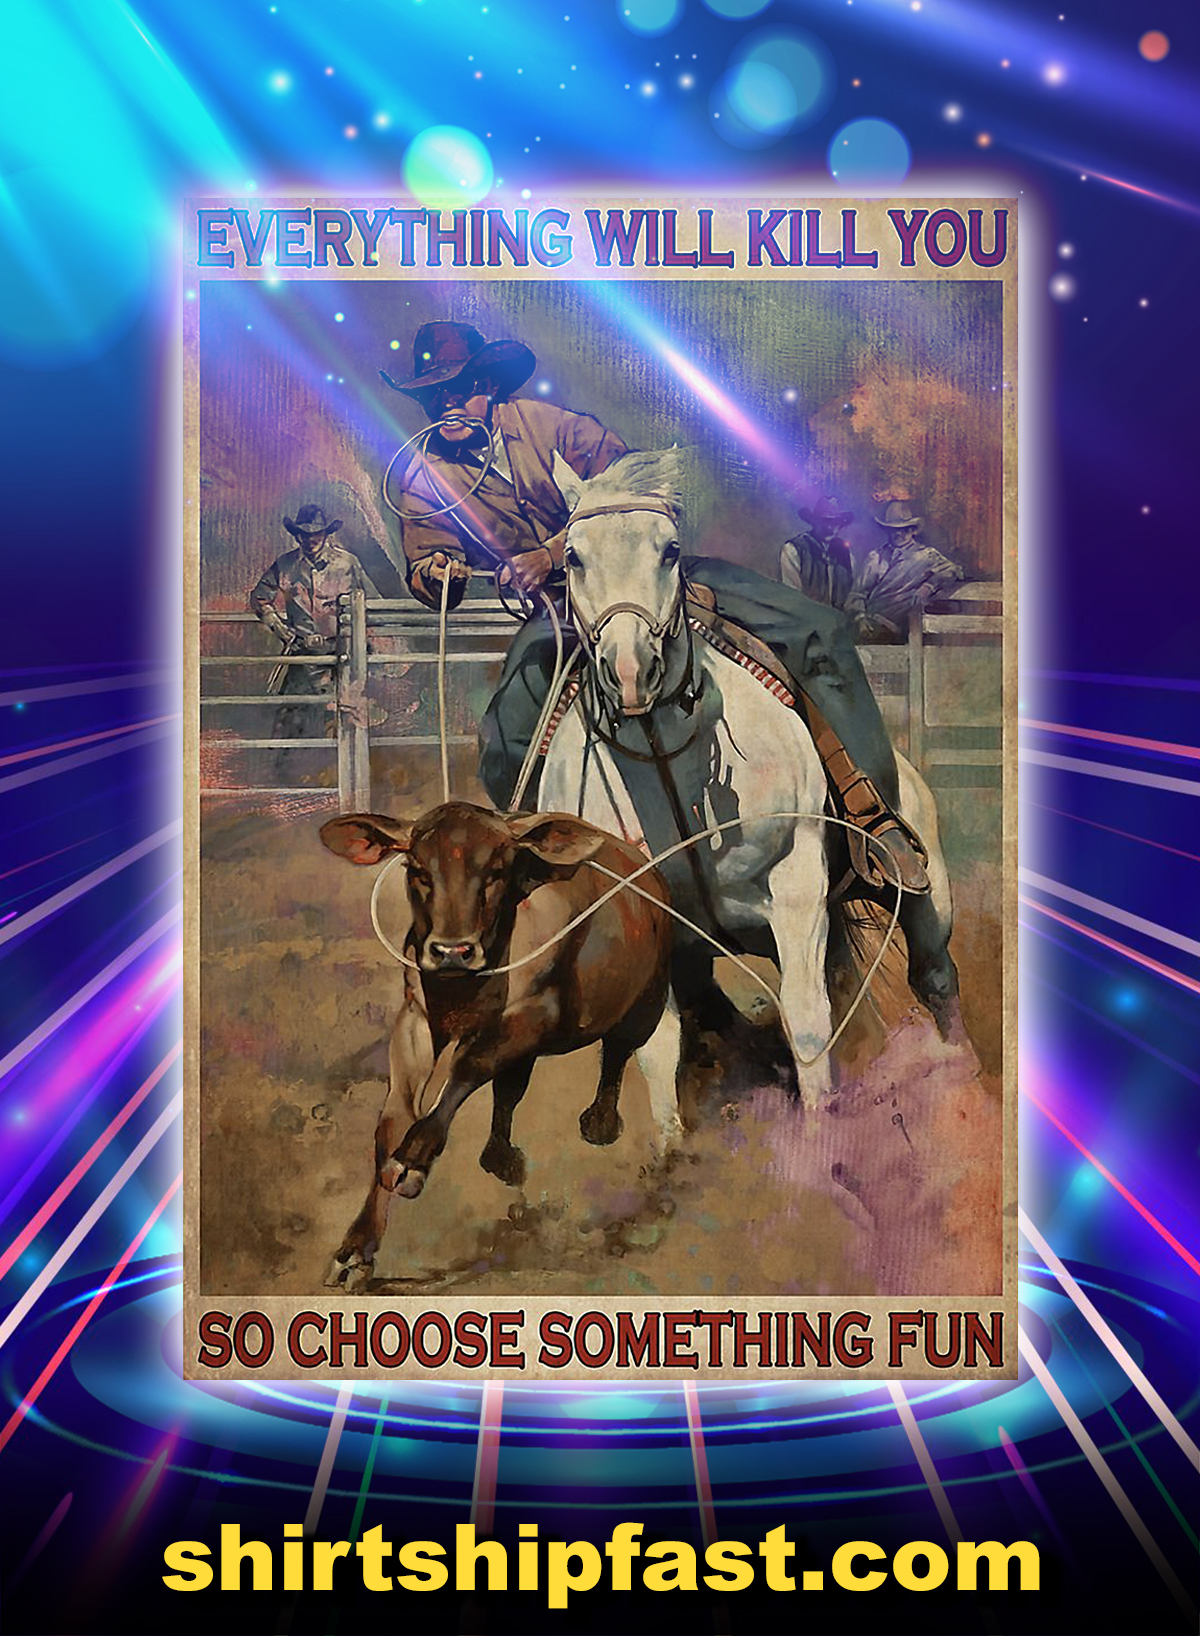 Rodeo everything will kill you poster - A4